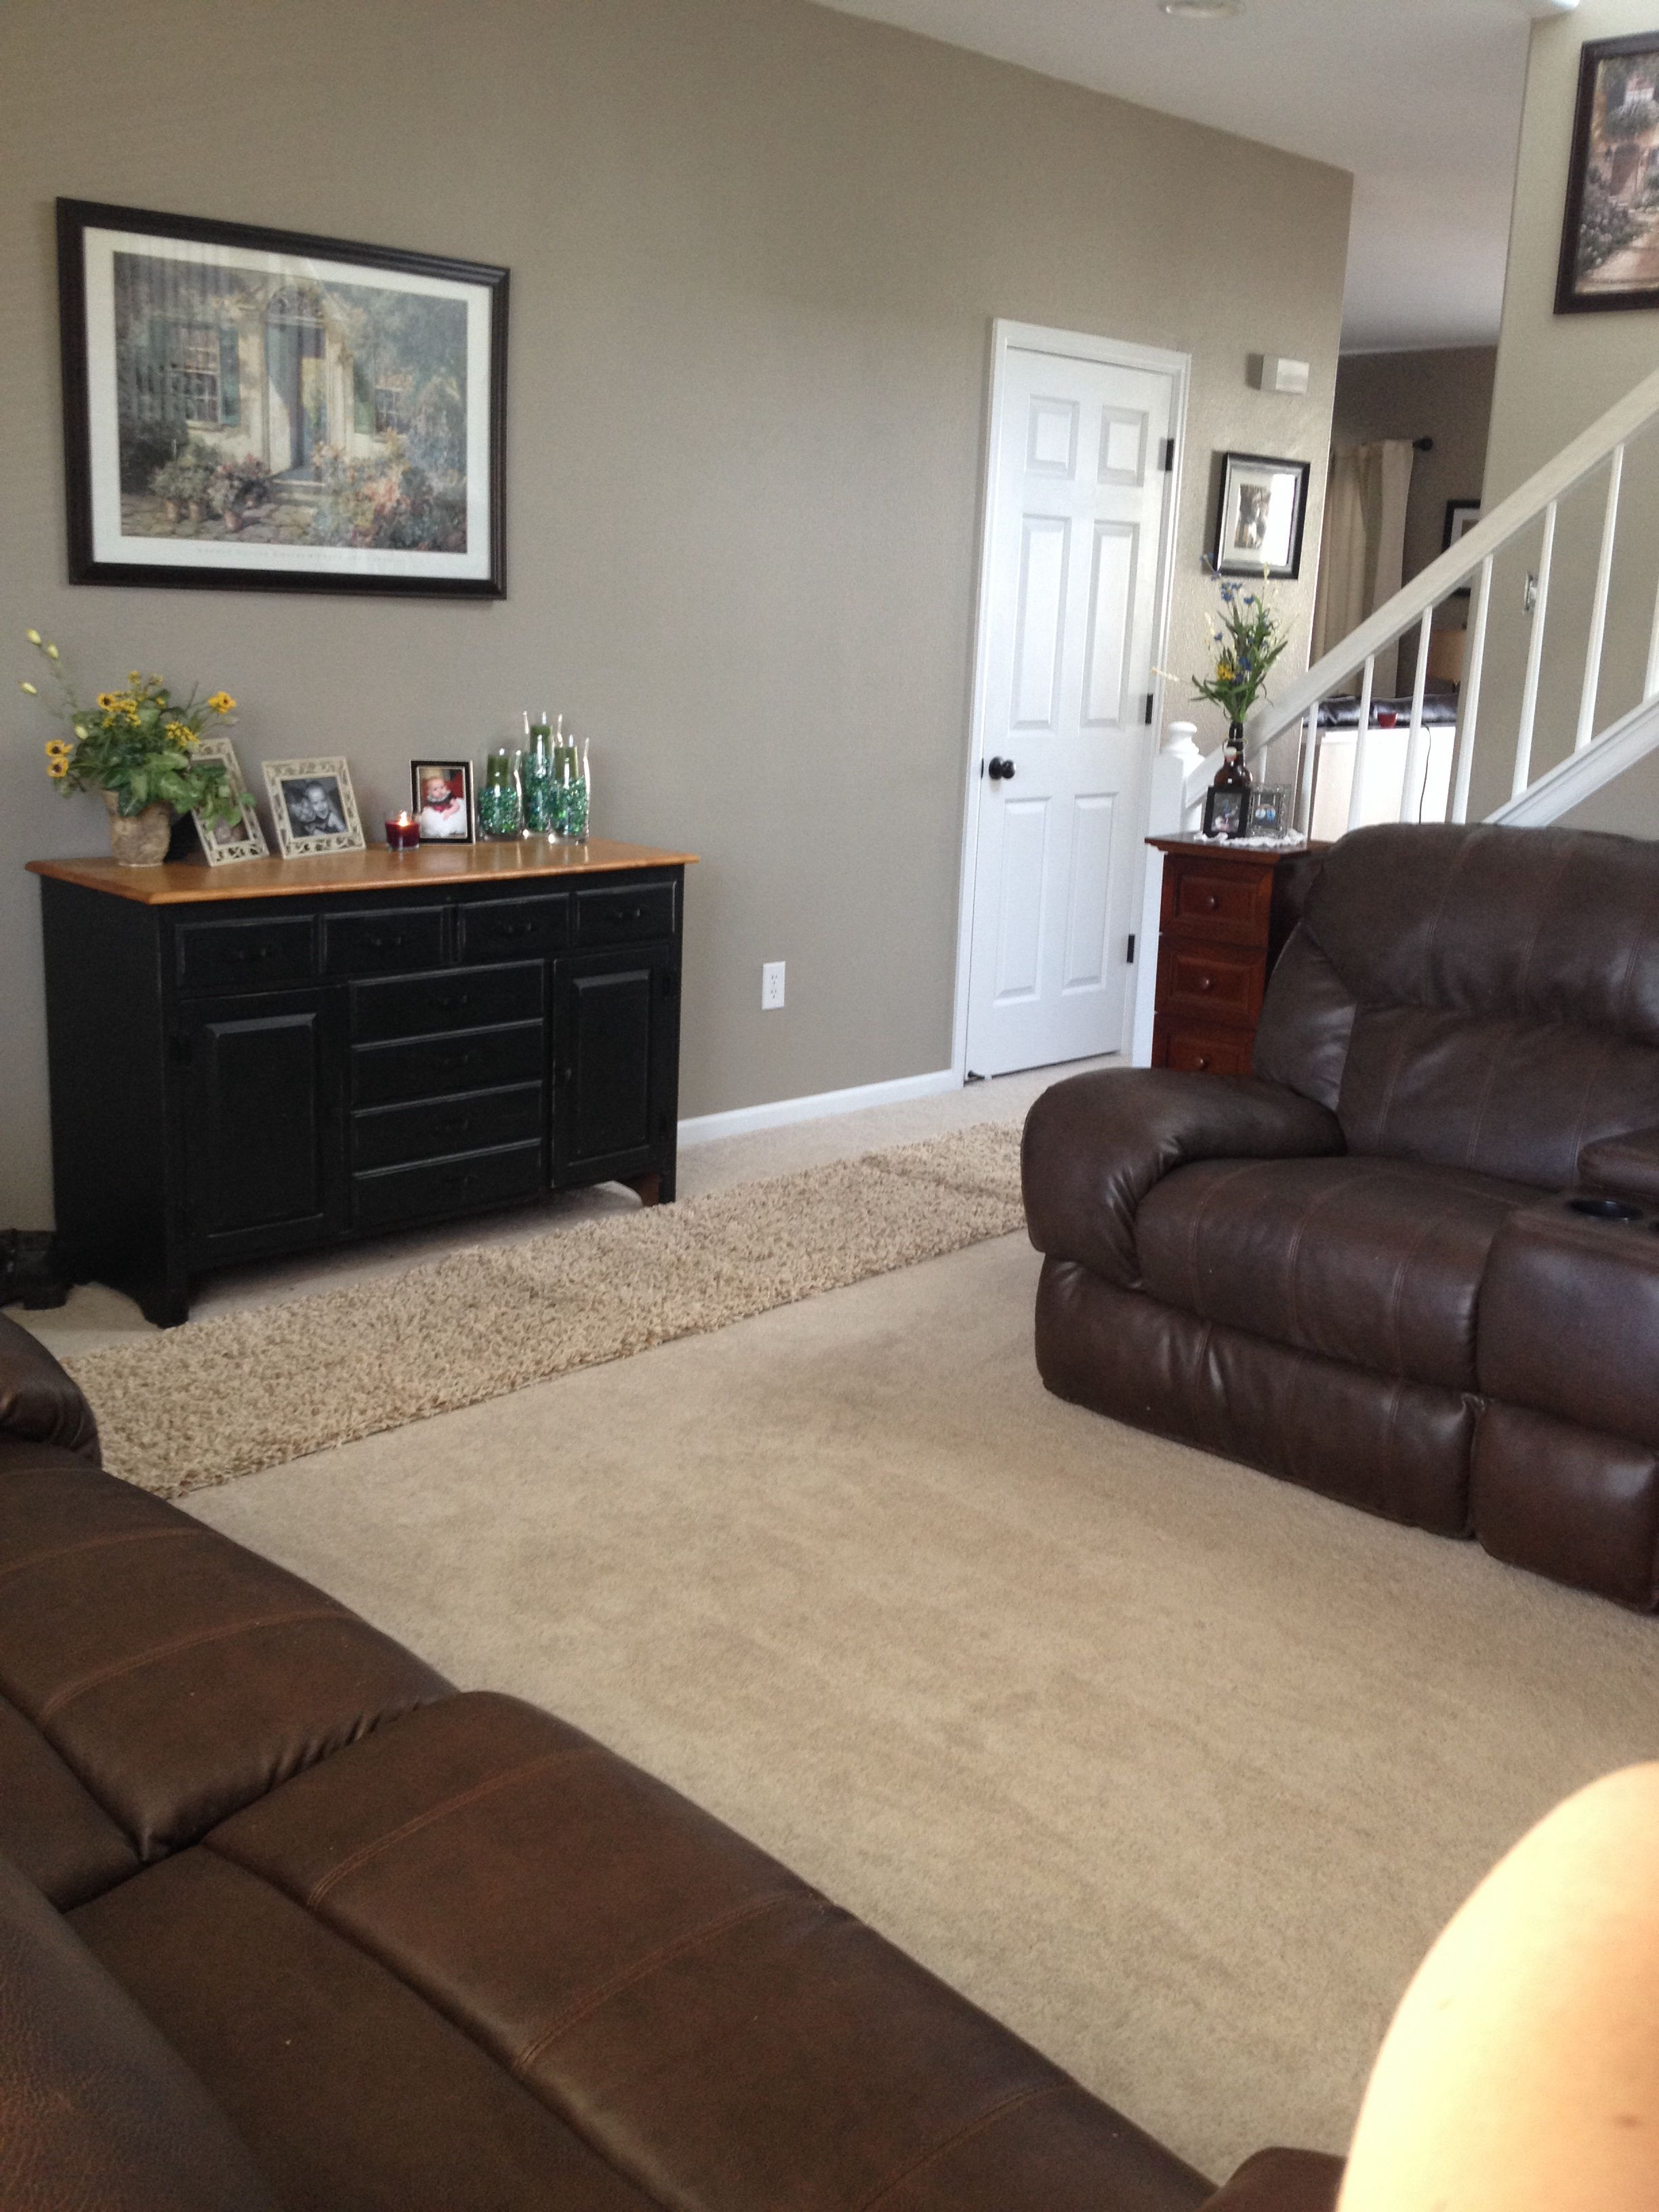 My Living Room Benjamin Moore Indian River Is The Perfect Neutral To Warm And Update A Space